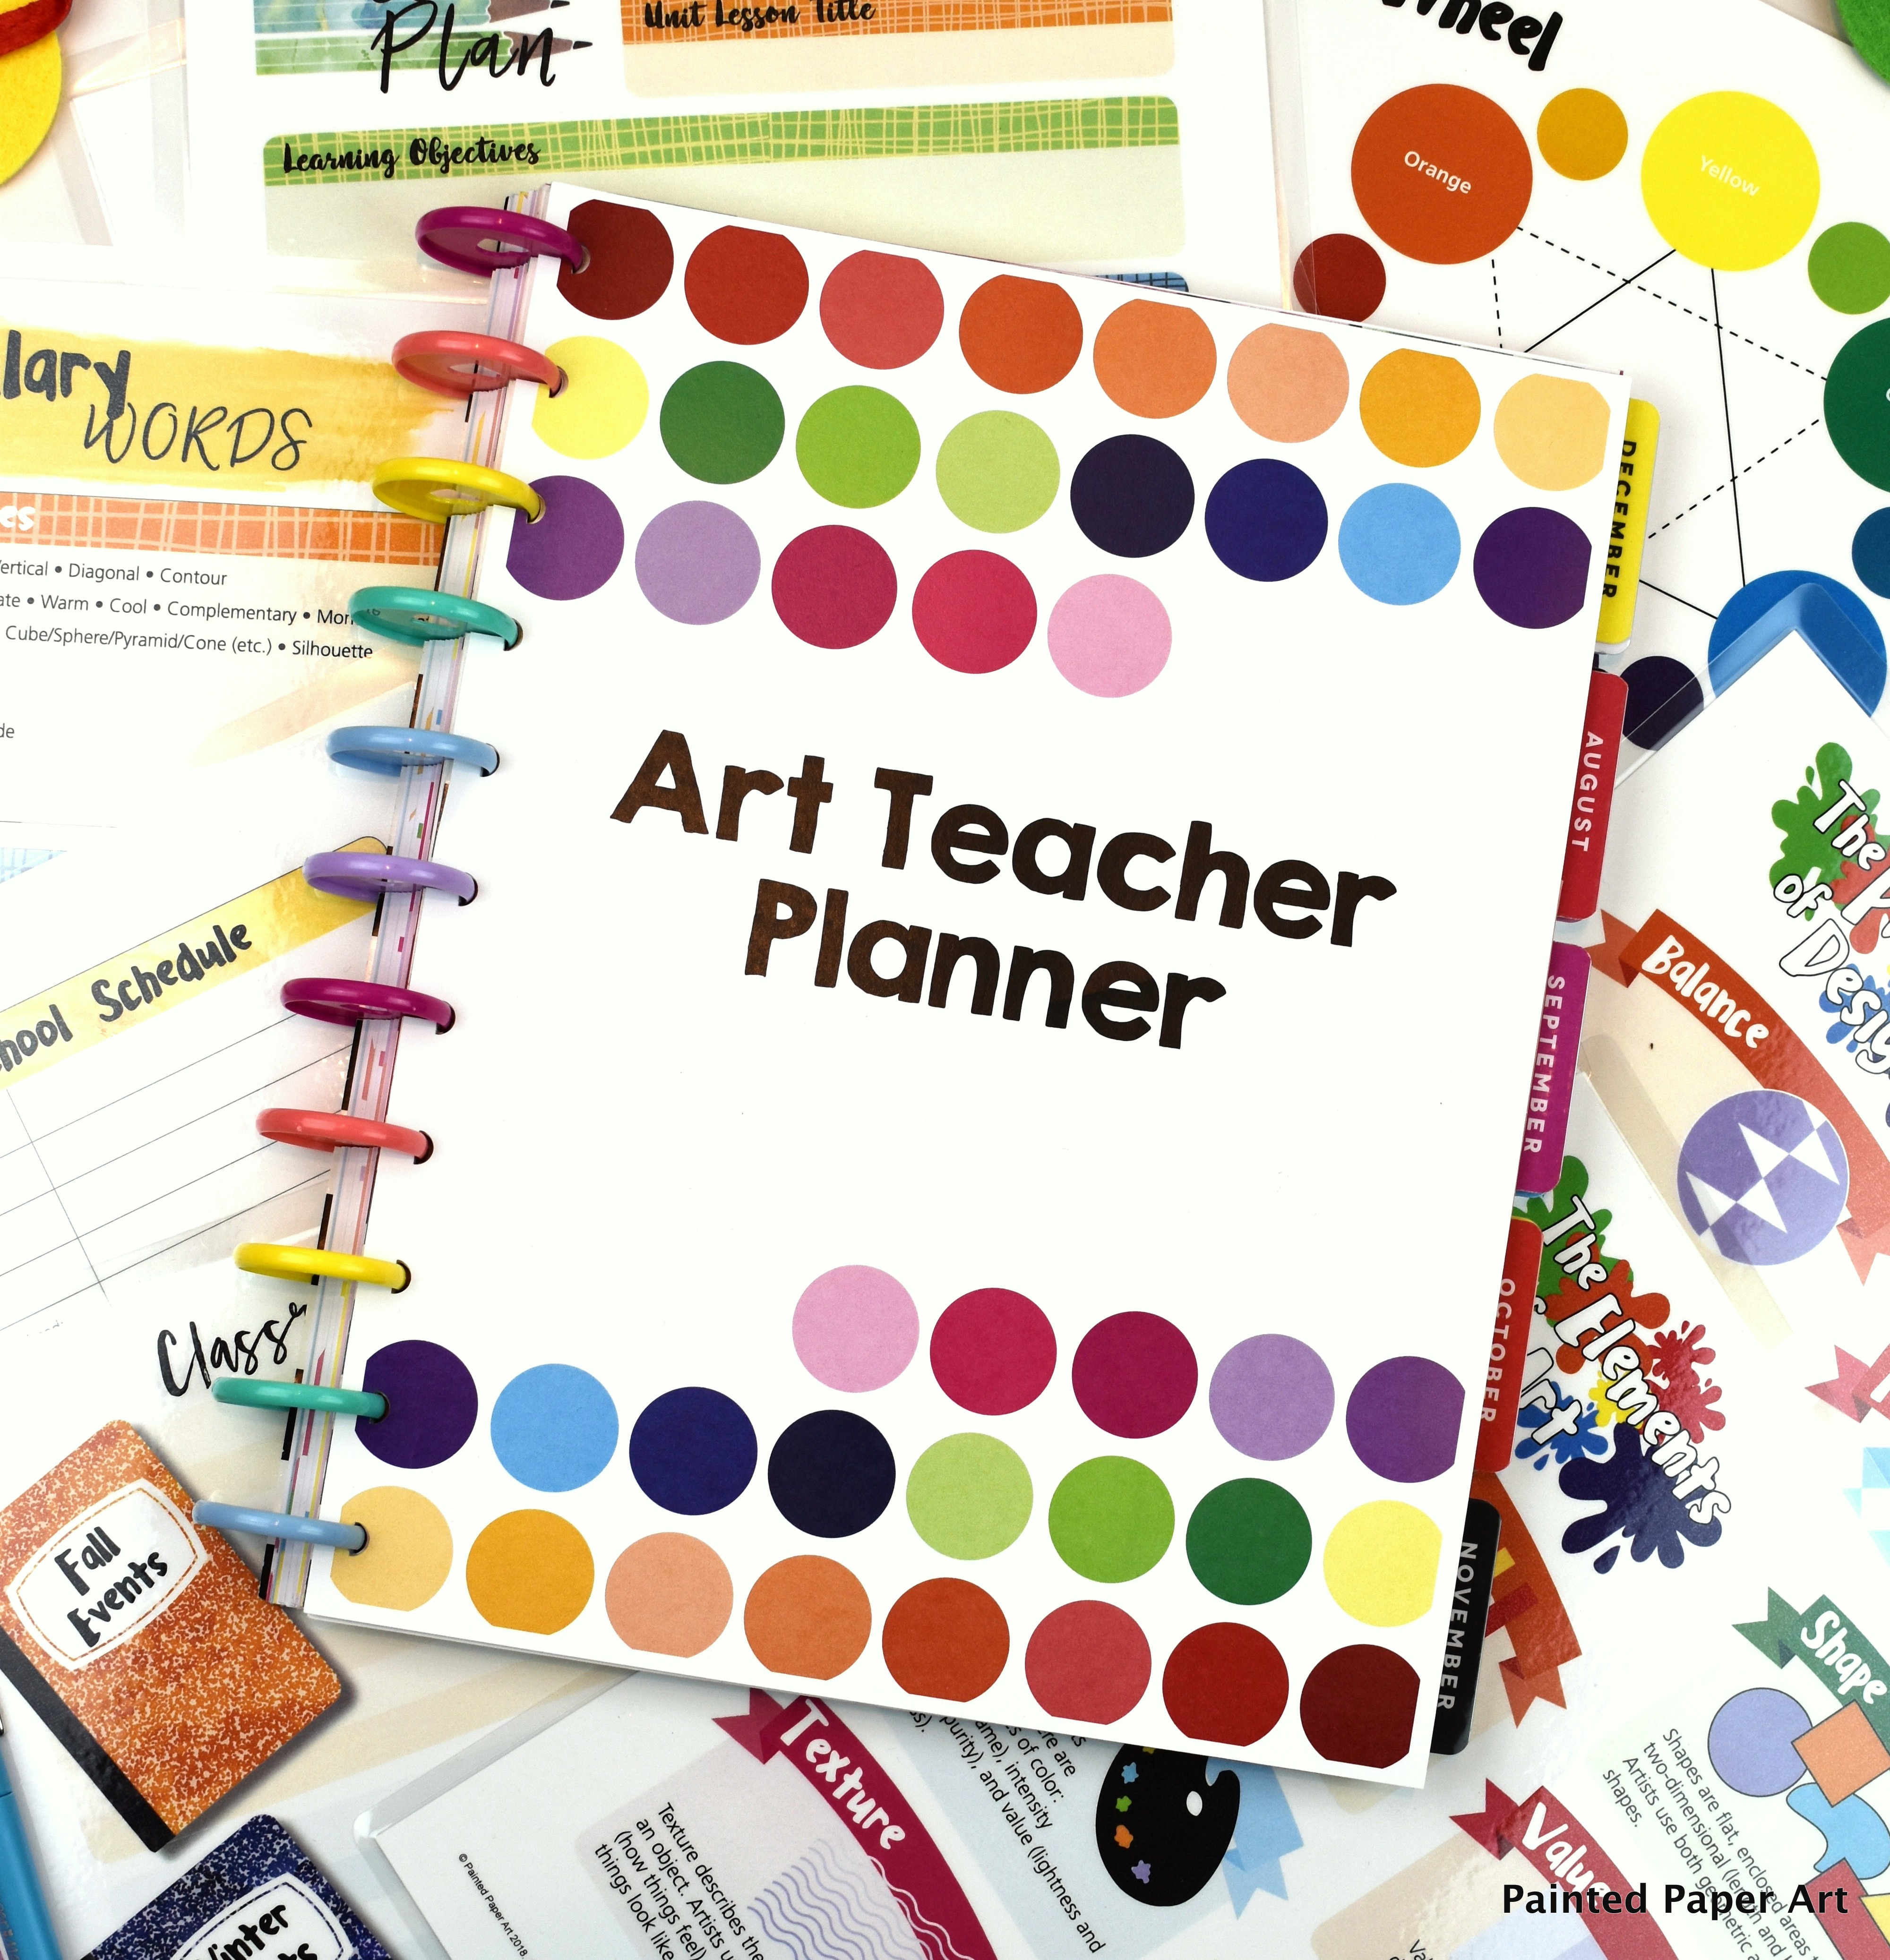 Art Teacher Planner